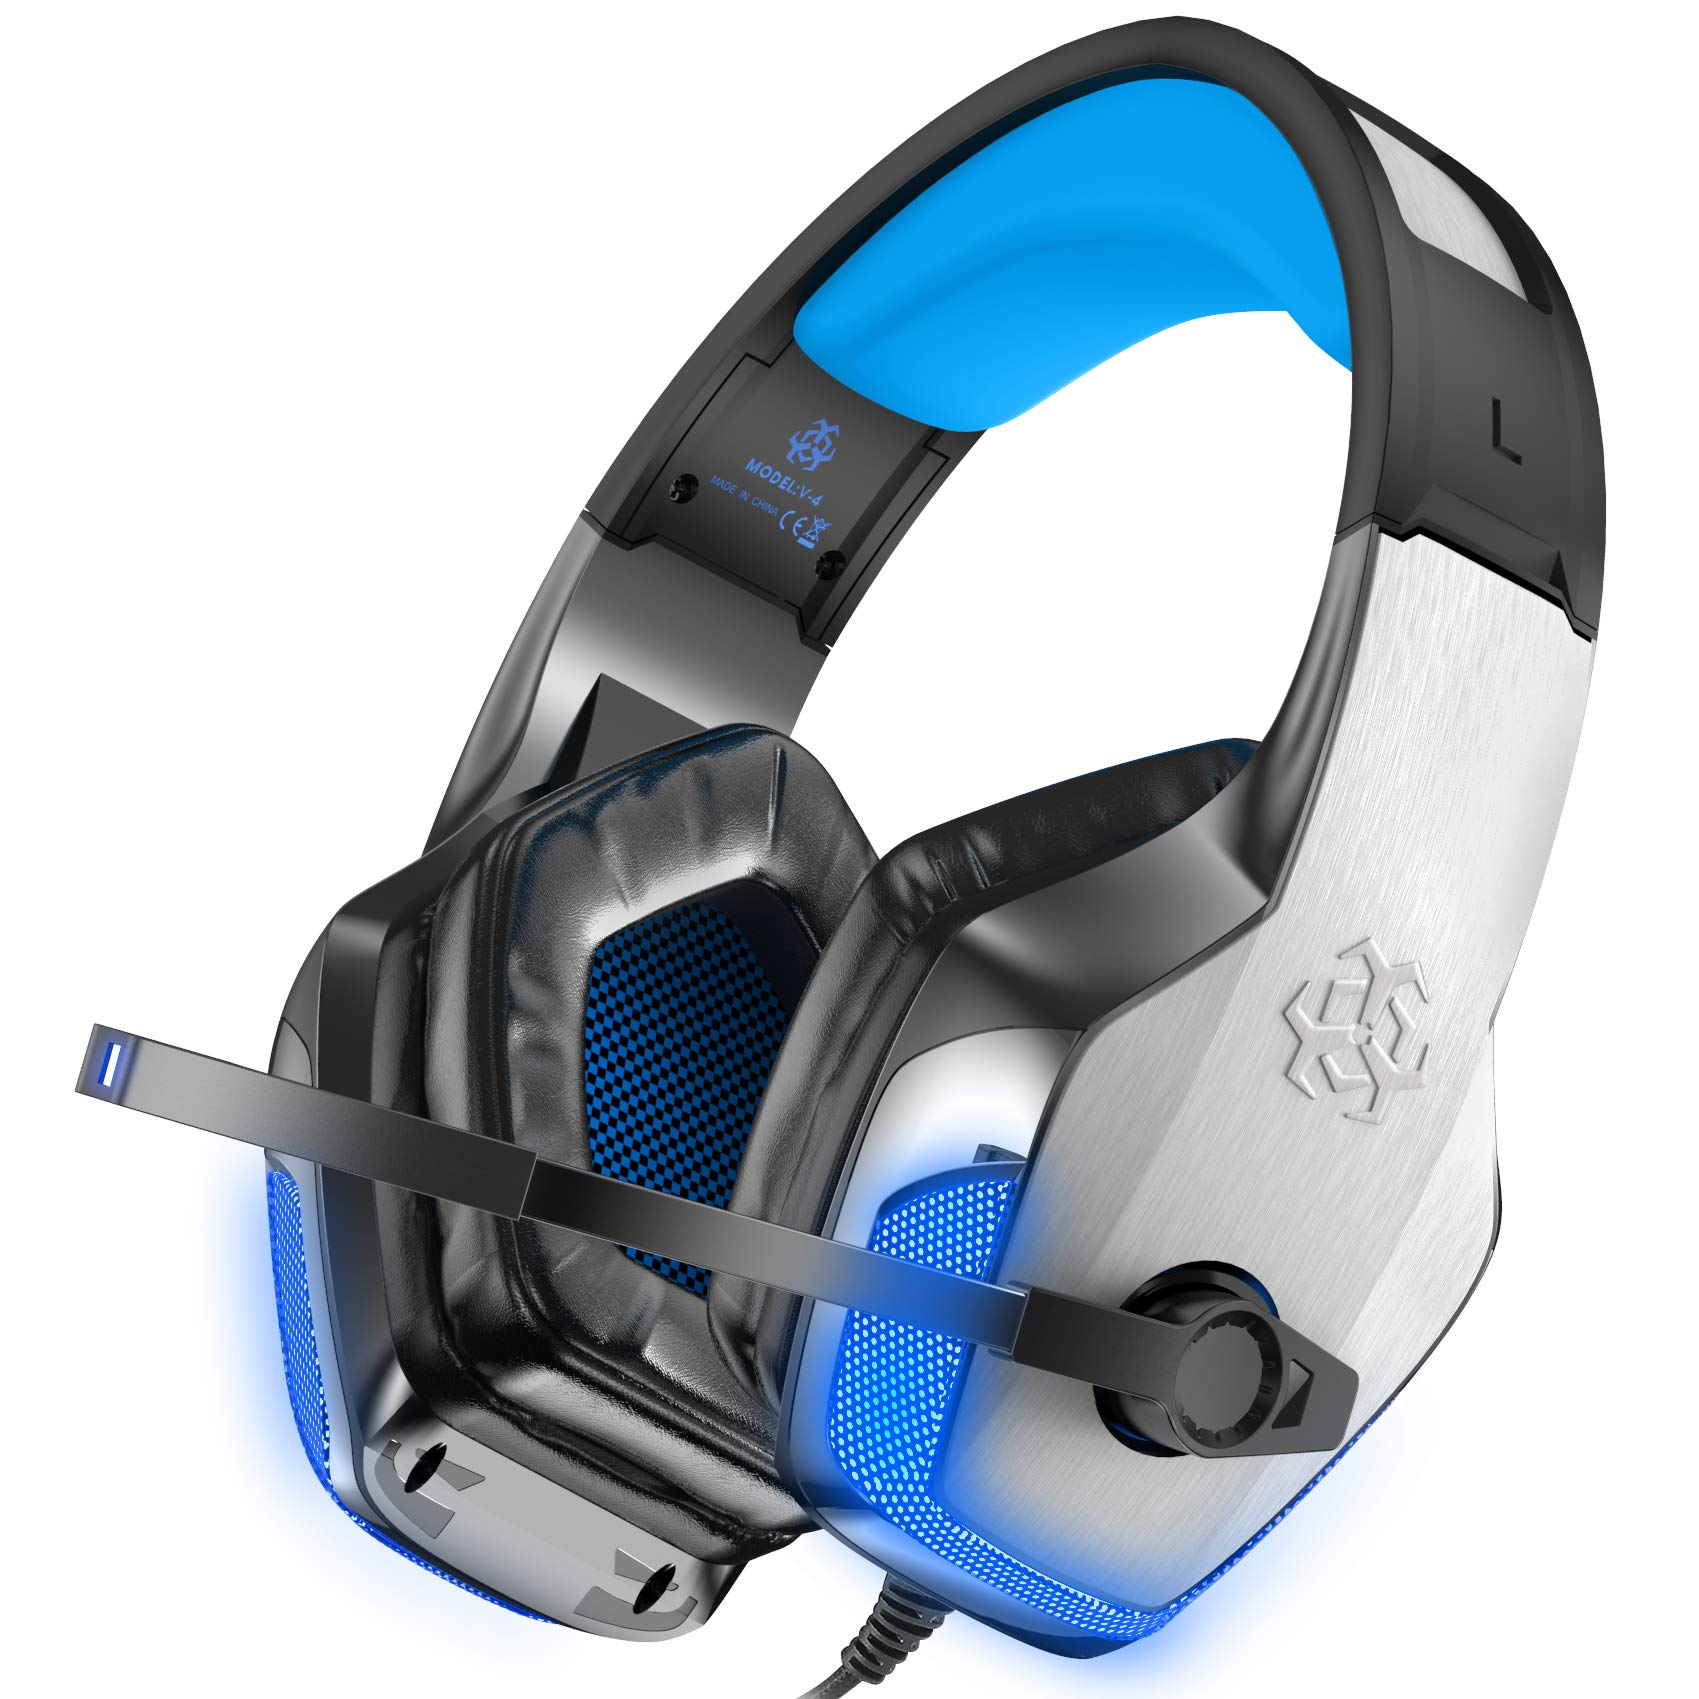 BENGOO V-4 [Updated] Gaming Headset for Xbox One, PS4, PC, Controller, Noise Cancelling Over Ear Headphones with Mic, LED Light Bass Surround Soft Memory Earmuffs for Mac Nintendo Switch (Blue) by BENGOO